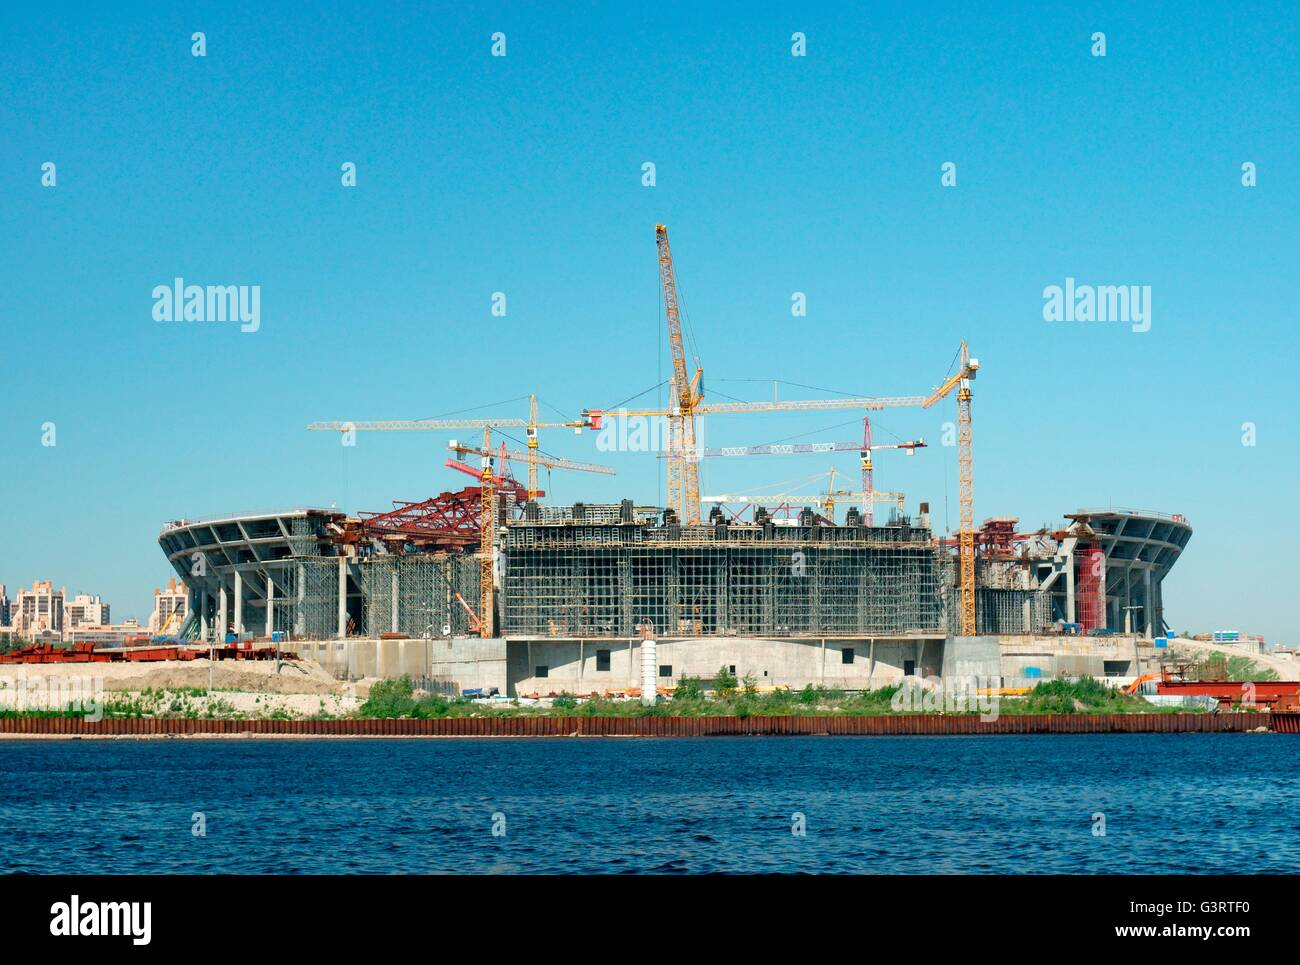 Russia, St. Petersburg. The New Zenit football stadium under construction May 2014 on Krestovsky Island - Stock Image